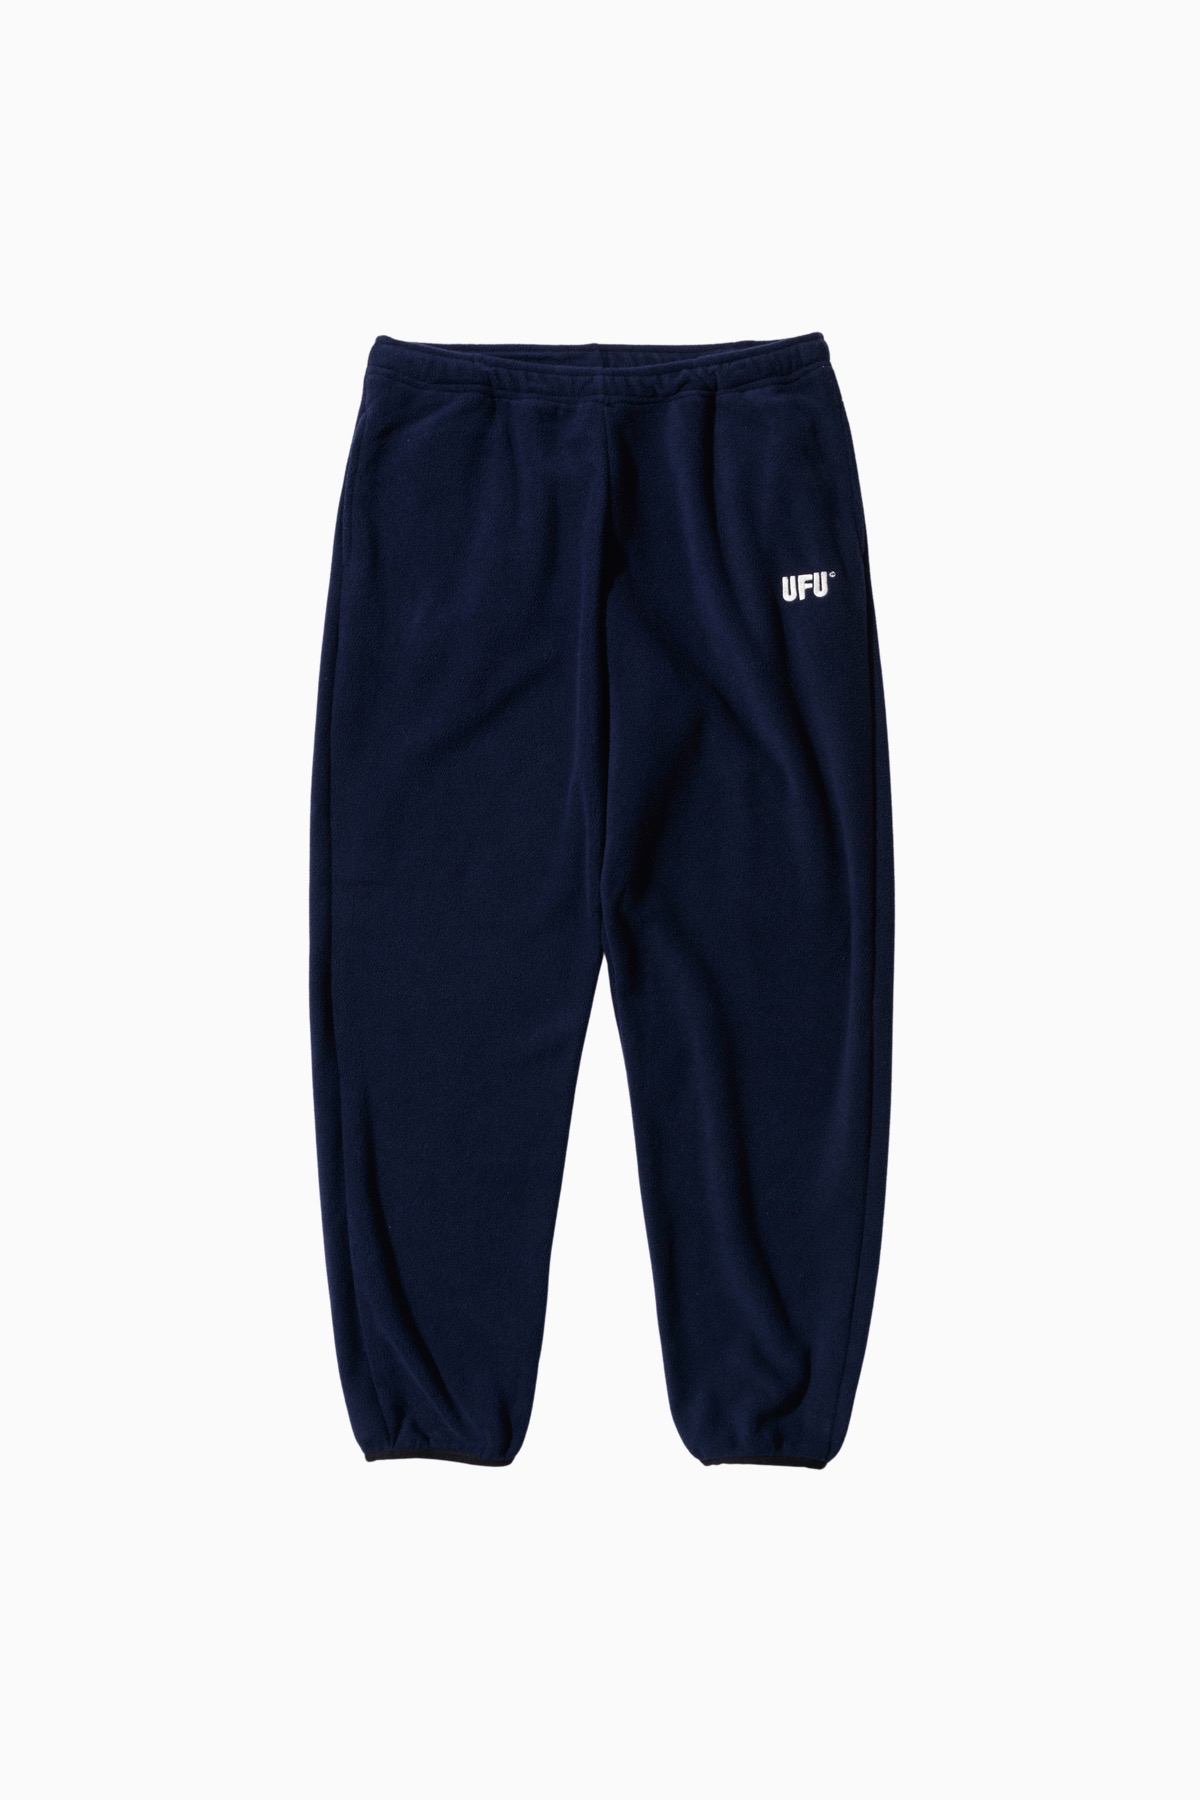 KEVIN PANTS_NAVY